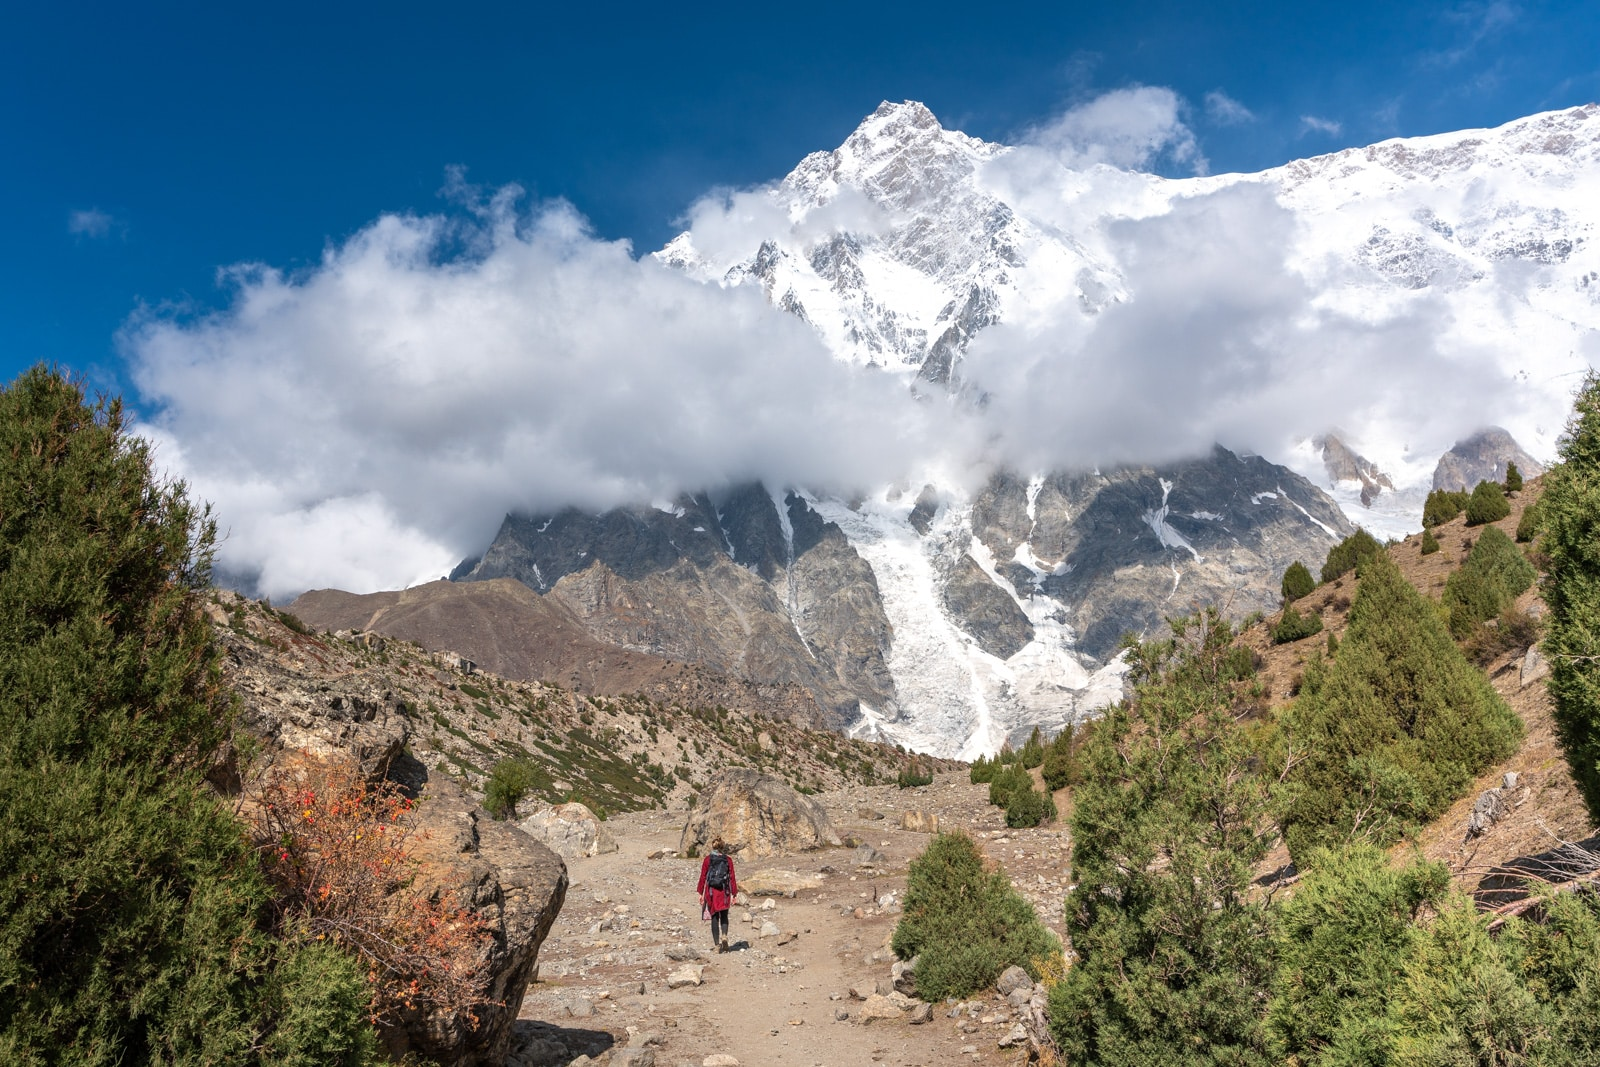 Girl trekking to Nanga Parbat Base Camp in Astore, Pakistan